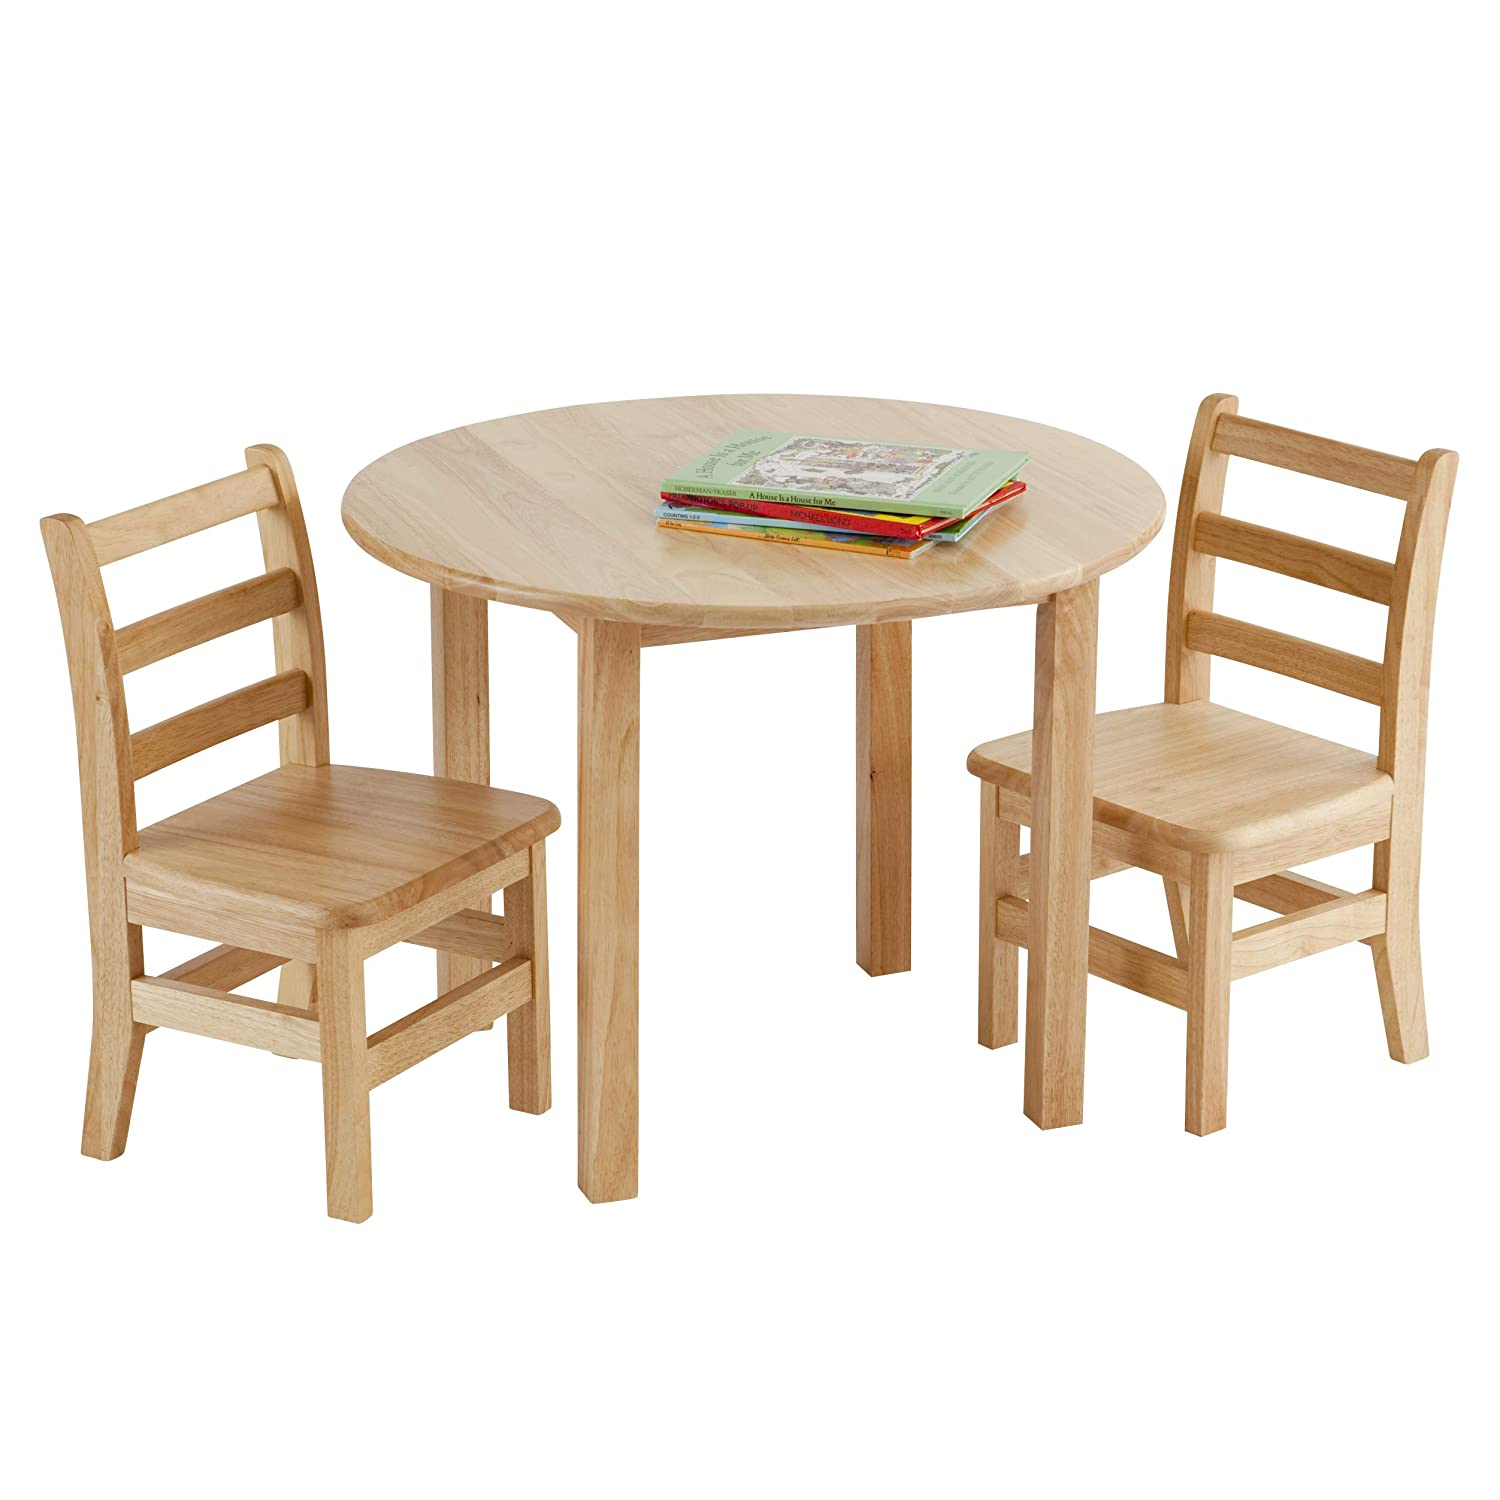 "ECR4Kids 30"" Round Natural Hardwood Table, 22"" Height with Two 12"" Chair Set (3-Piece)"